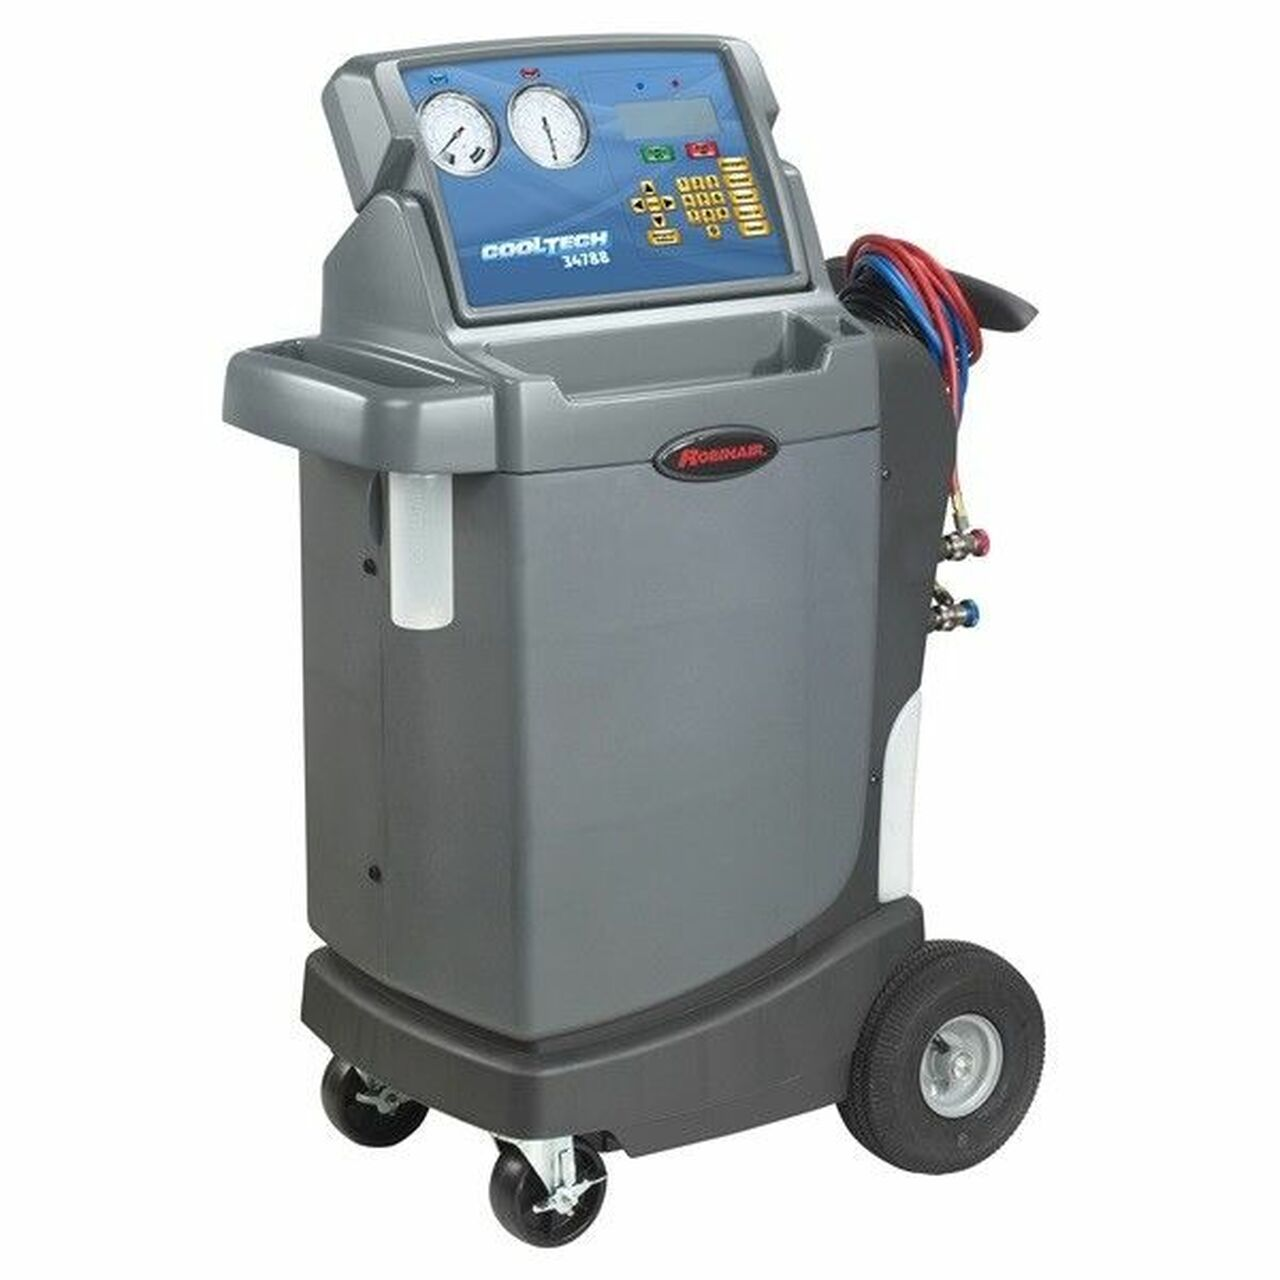 ROBINAIR ROB-34788 Premier R-134A Refrigerant Recovery, Recycling, and Recharging Machine